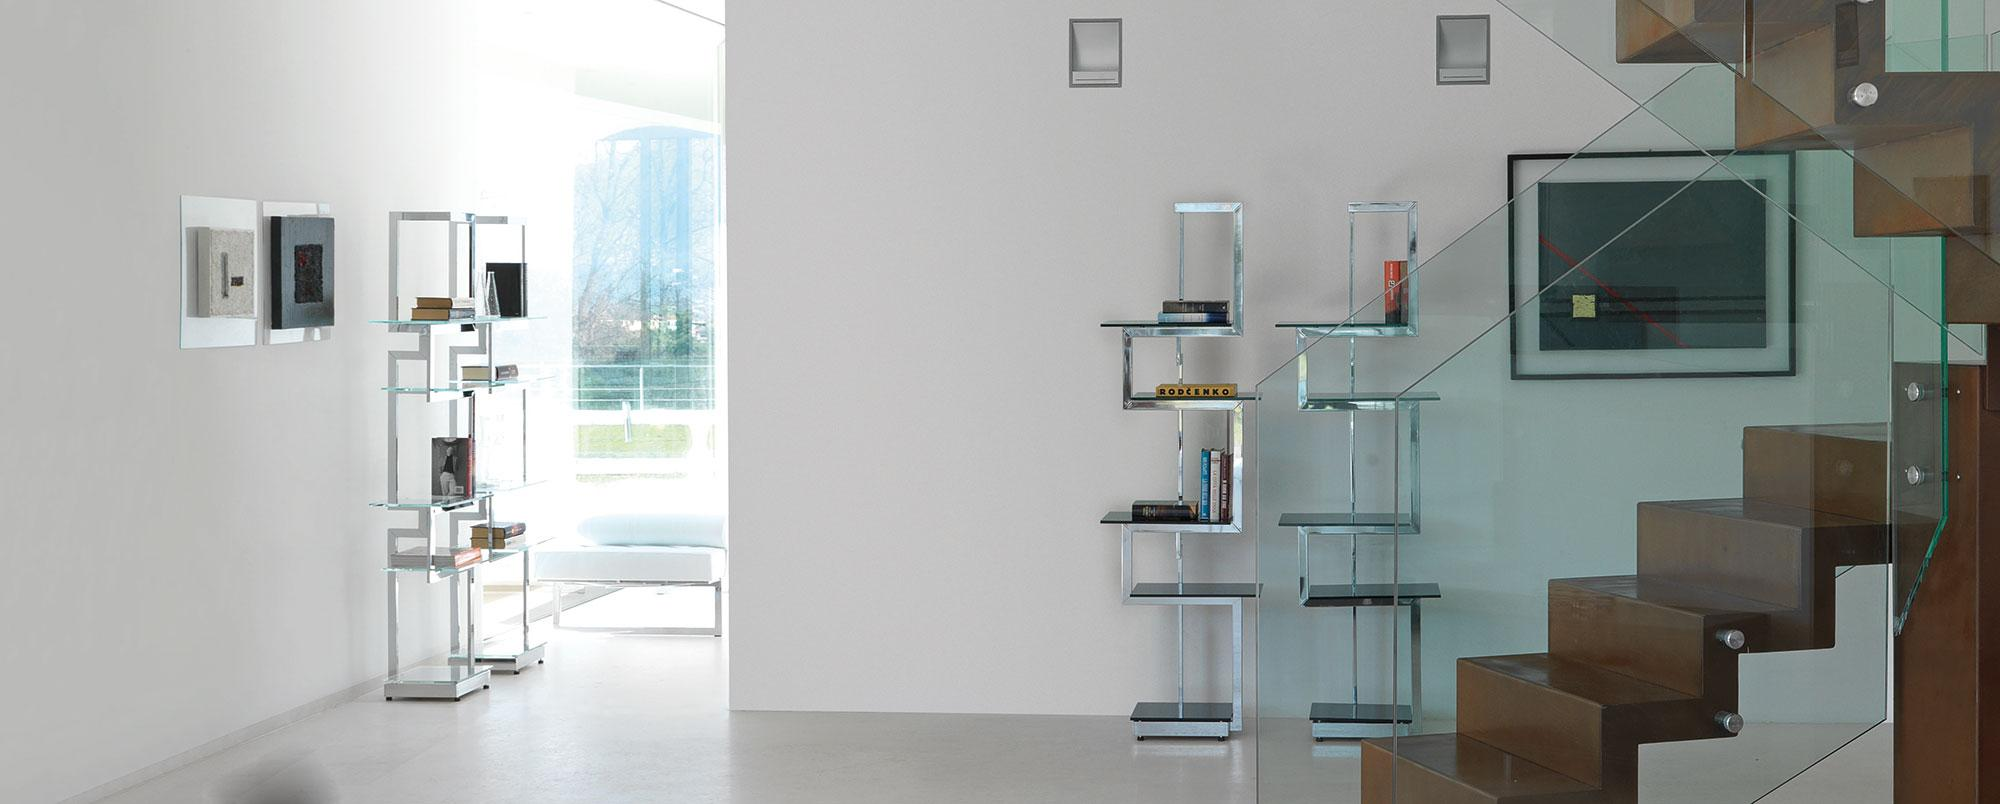 Bookcase Furniture Stores Shops Choice Design Delivery Factors Sale Home  Homestore House Italia Market Makers Manufacturers